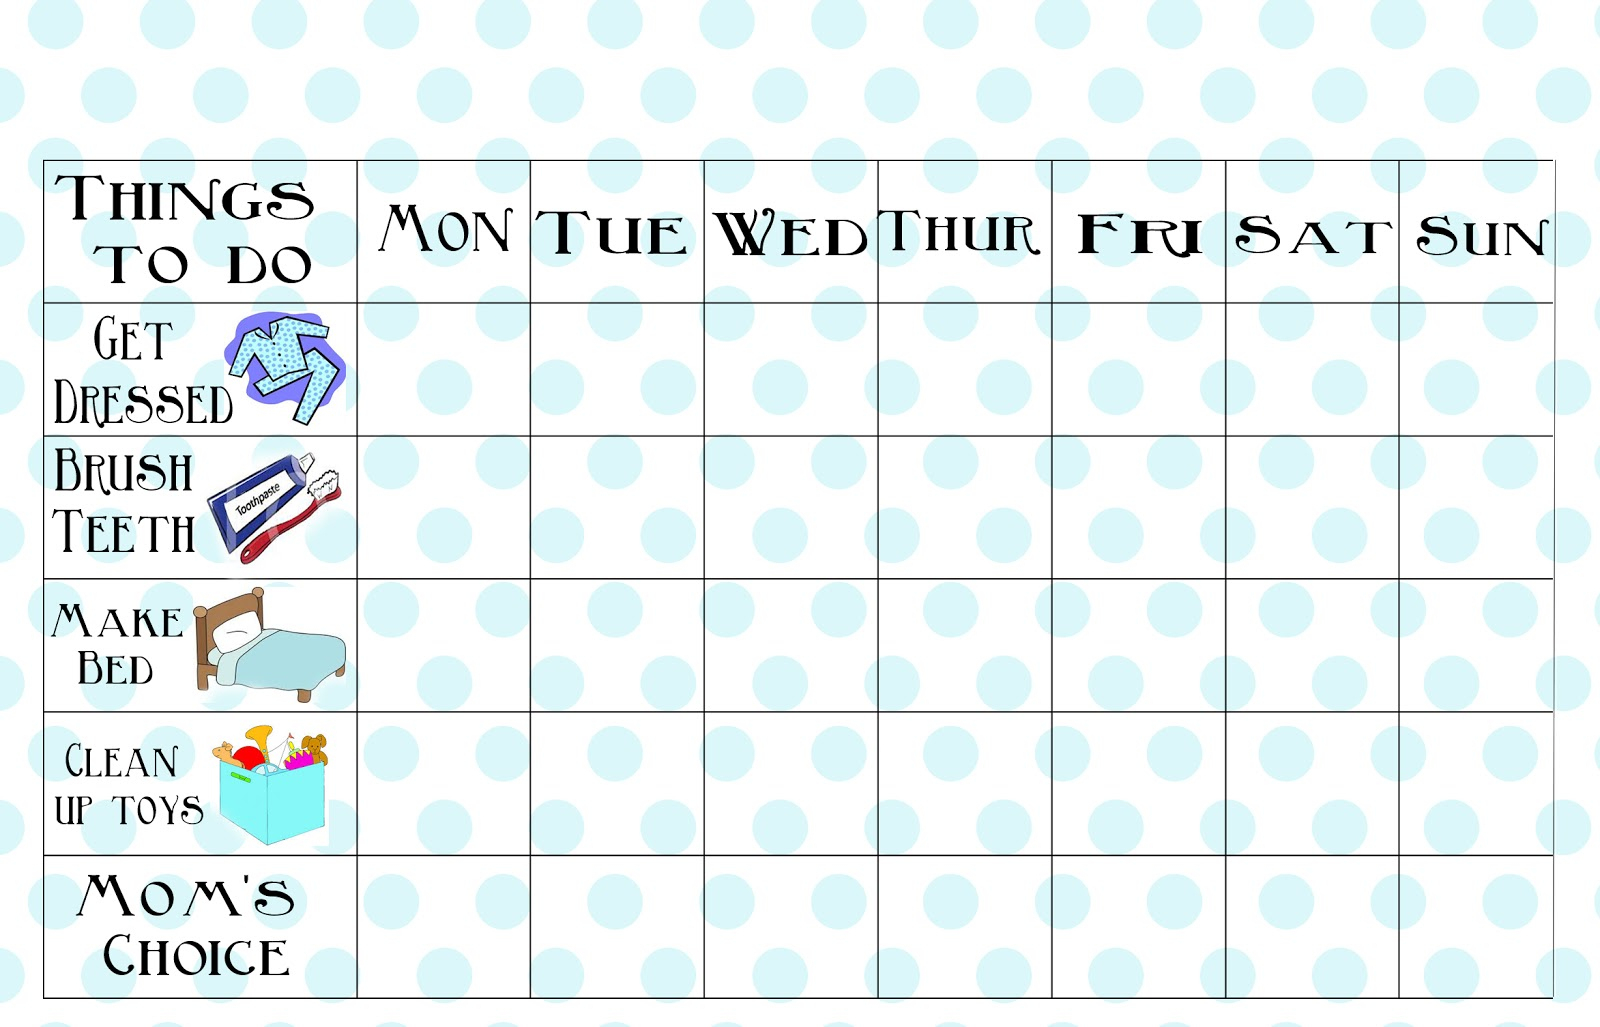 Free Printable Chore Chart - Free Printable Pictures For Chore Charts